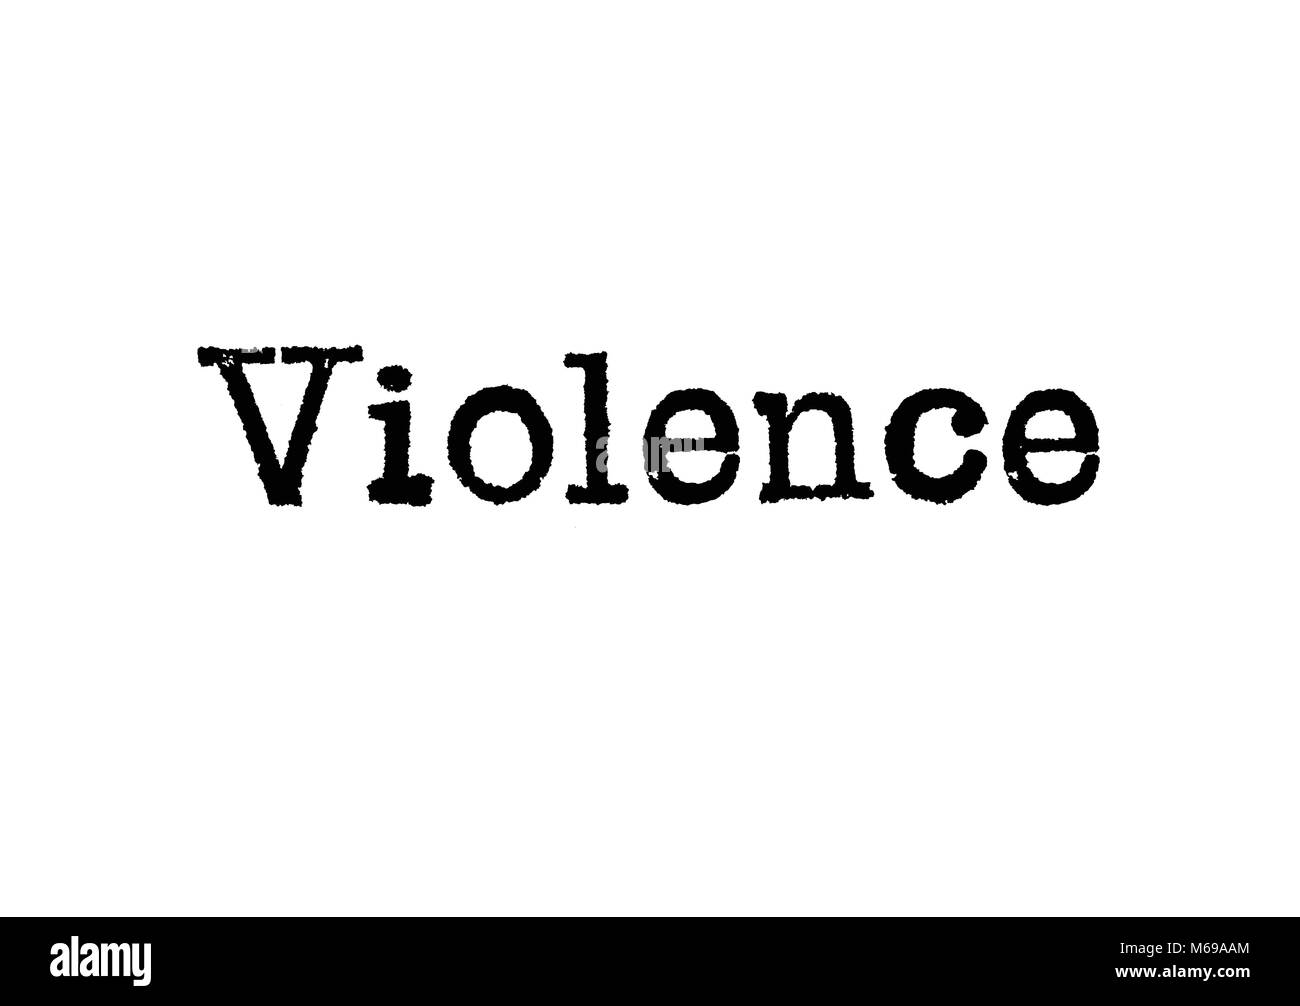 The word Violence from a typewriter on a white background - Stock Image